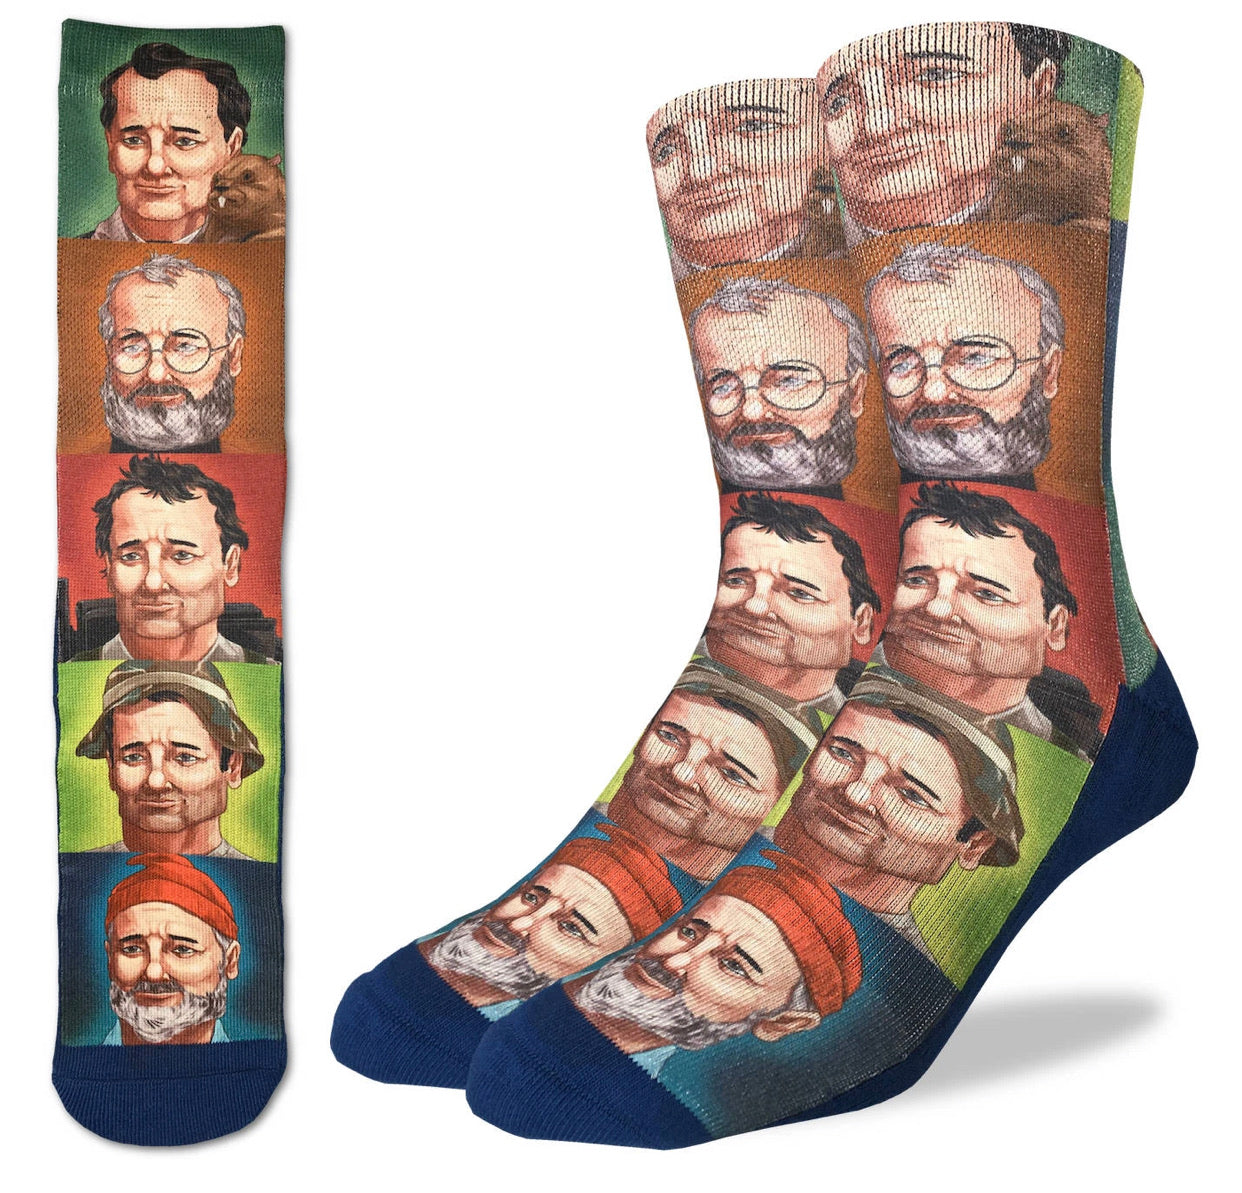 Men's - The Bill Murray Socks